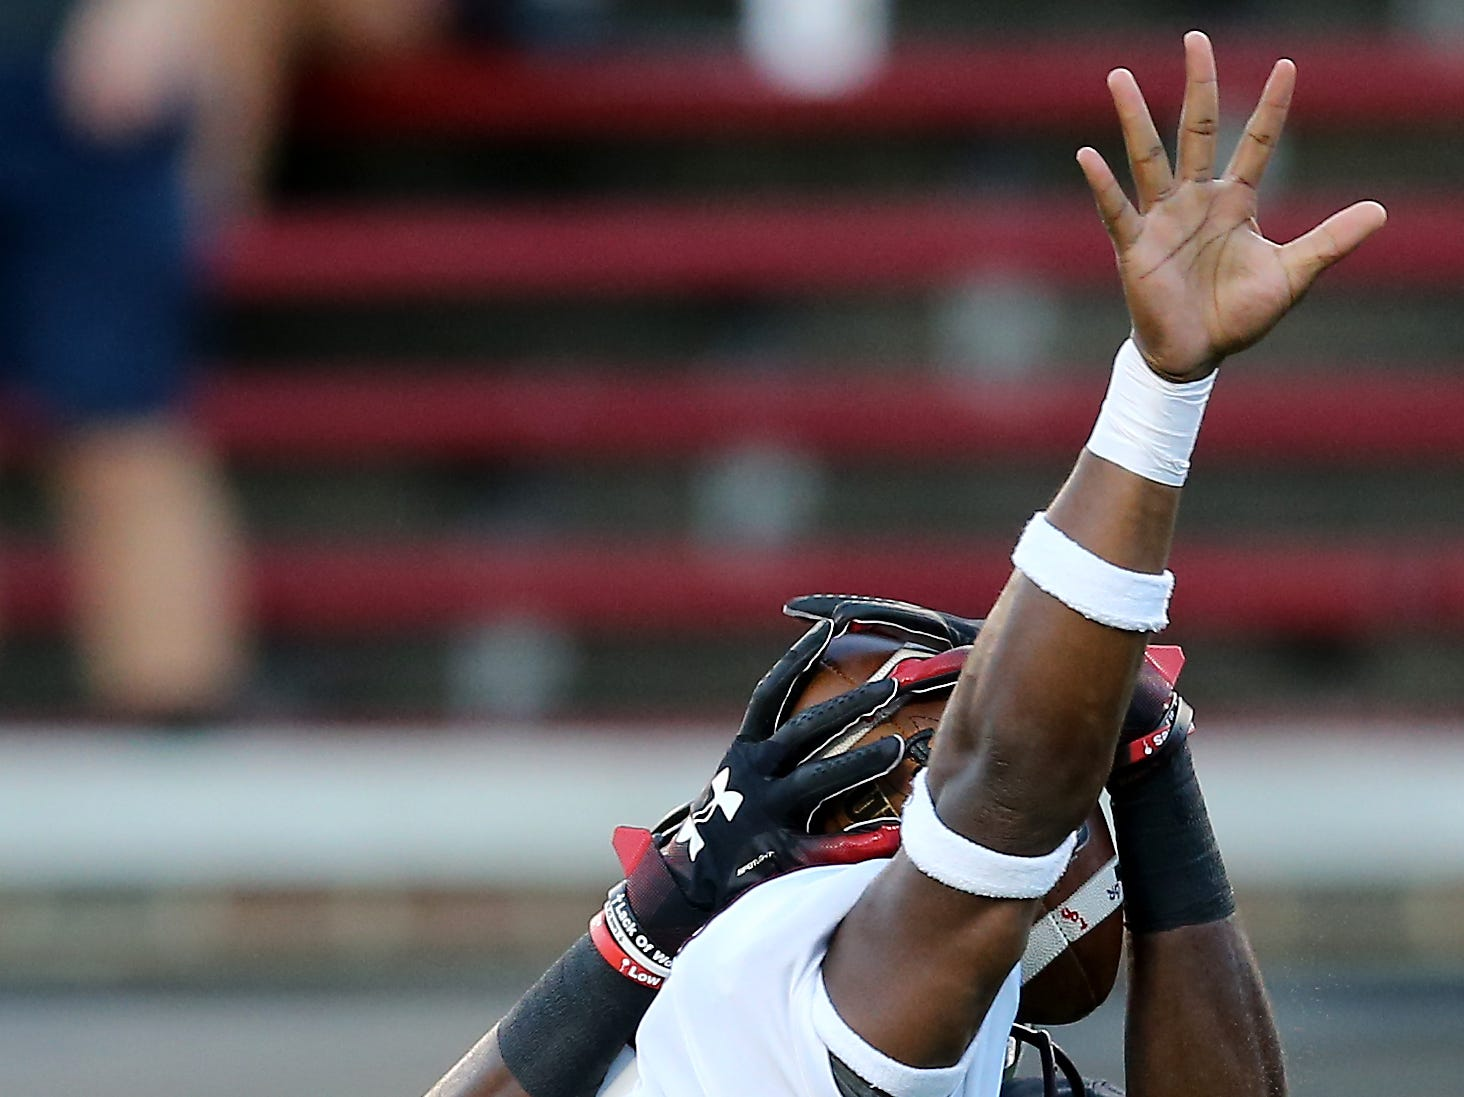 Cincinnati Bearcats wide receiver Thomas Geddis (85) pins the ball on Alabama A&M Bulldogs cornerback Joshua M. Williams (28) to complete a touchdown catch in the first quarter during a college football game between the Cincinnati Bearcats and the Alabama A&M Bulldogs, Saturday, Sept. 15, 2018, at Nippert Stadium in Cincinnati.